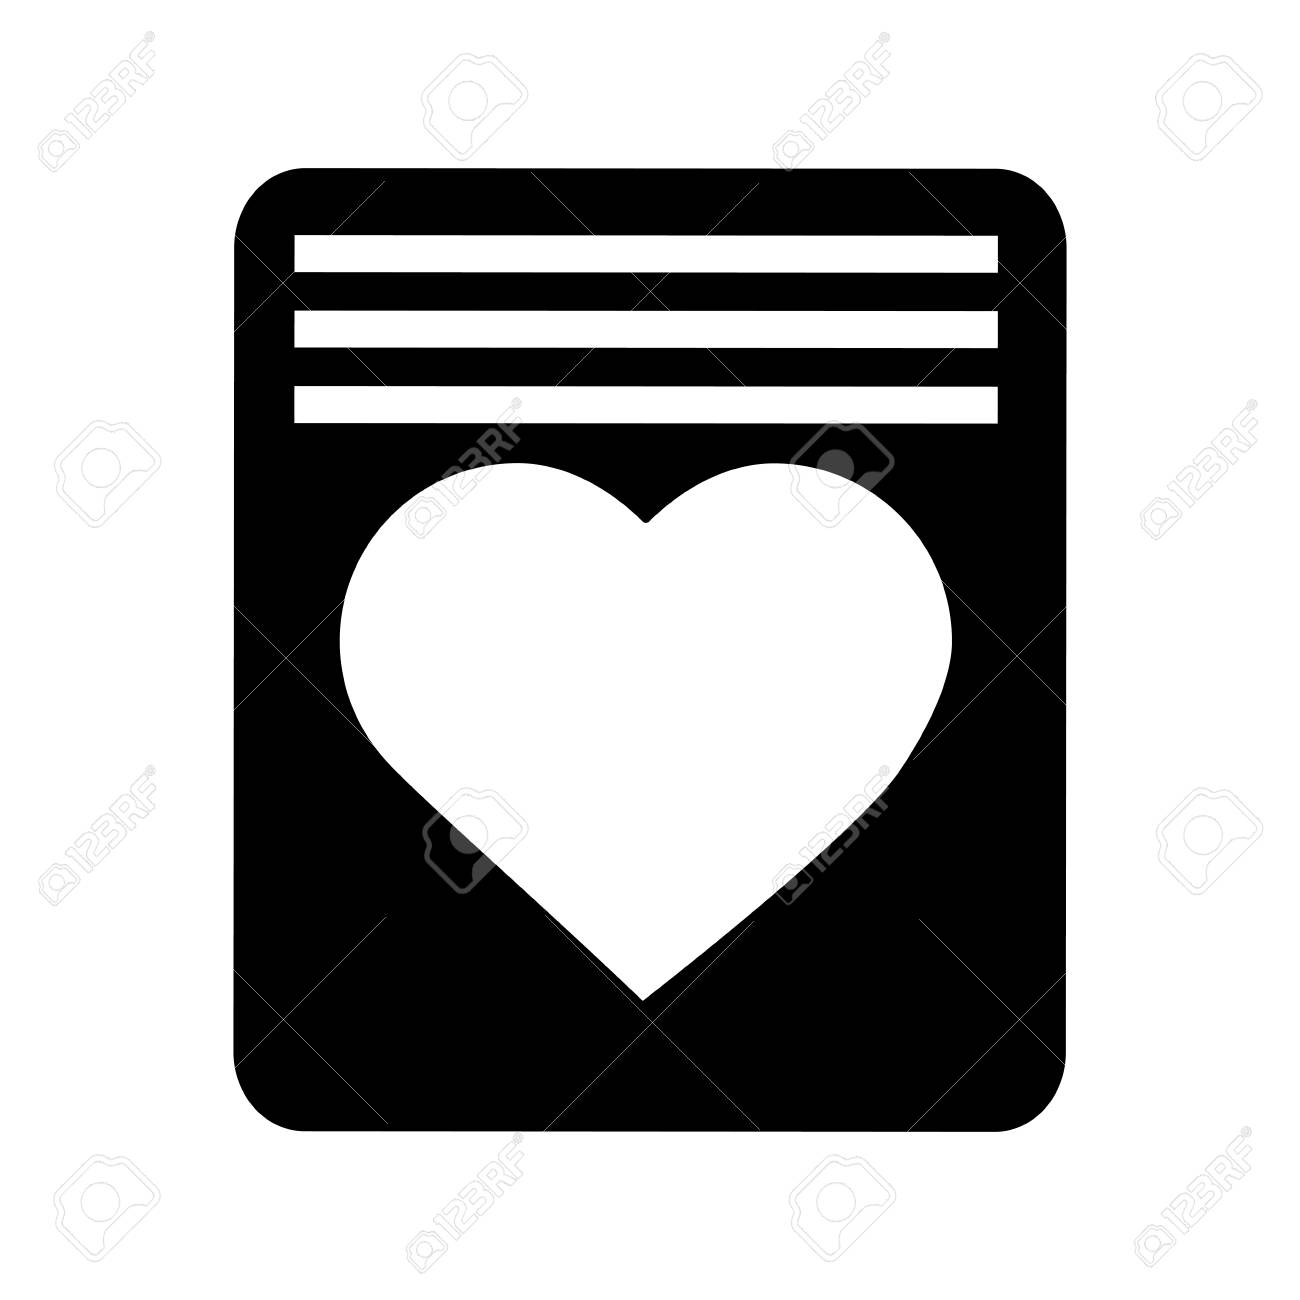 love letter valentines day related icon image. vector illustration